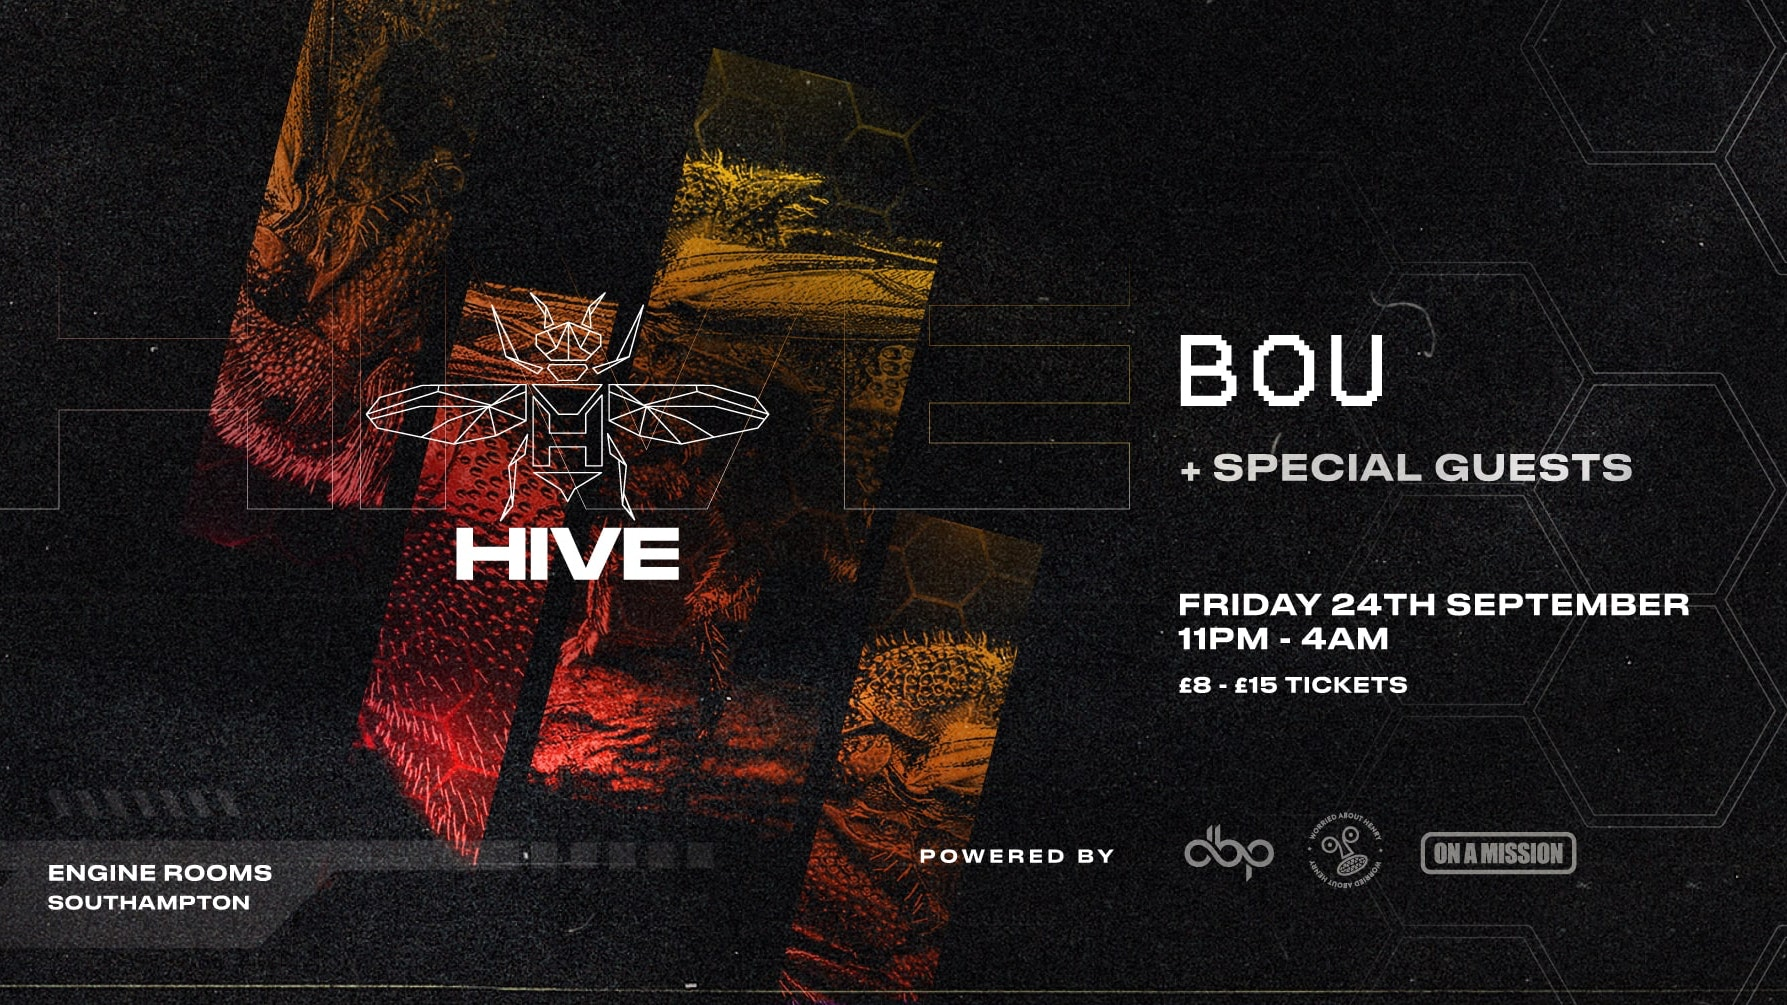 Friday 24th Sept: Hive presents: Bou + Special guests